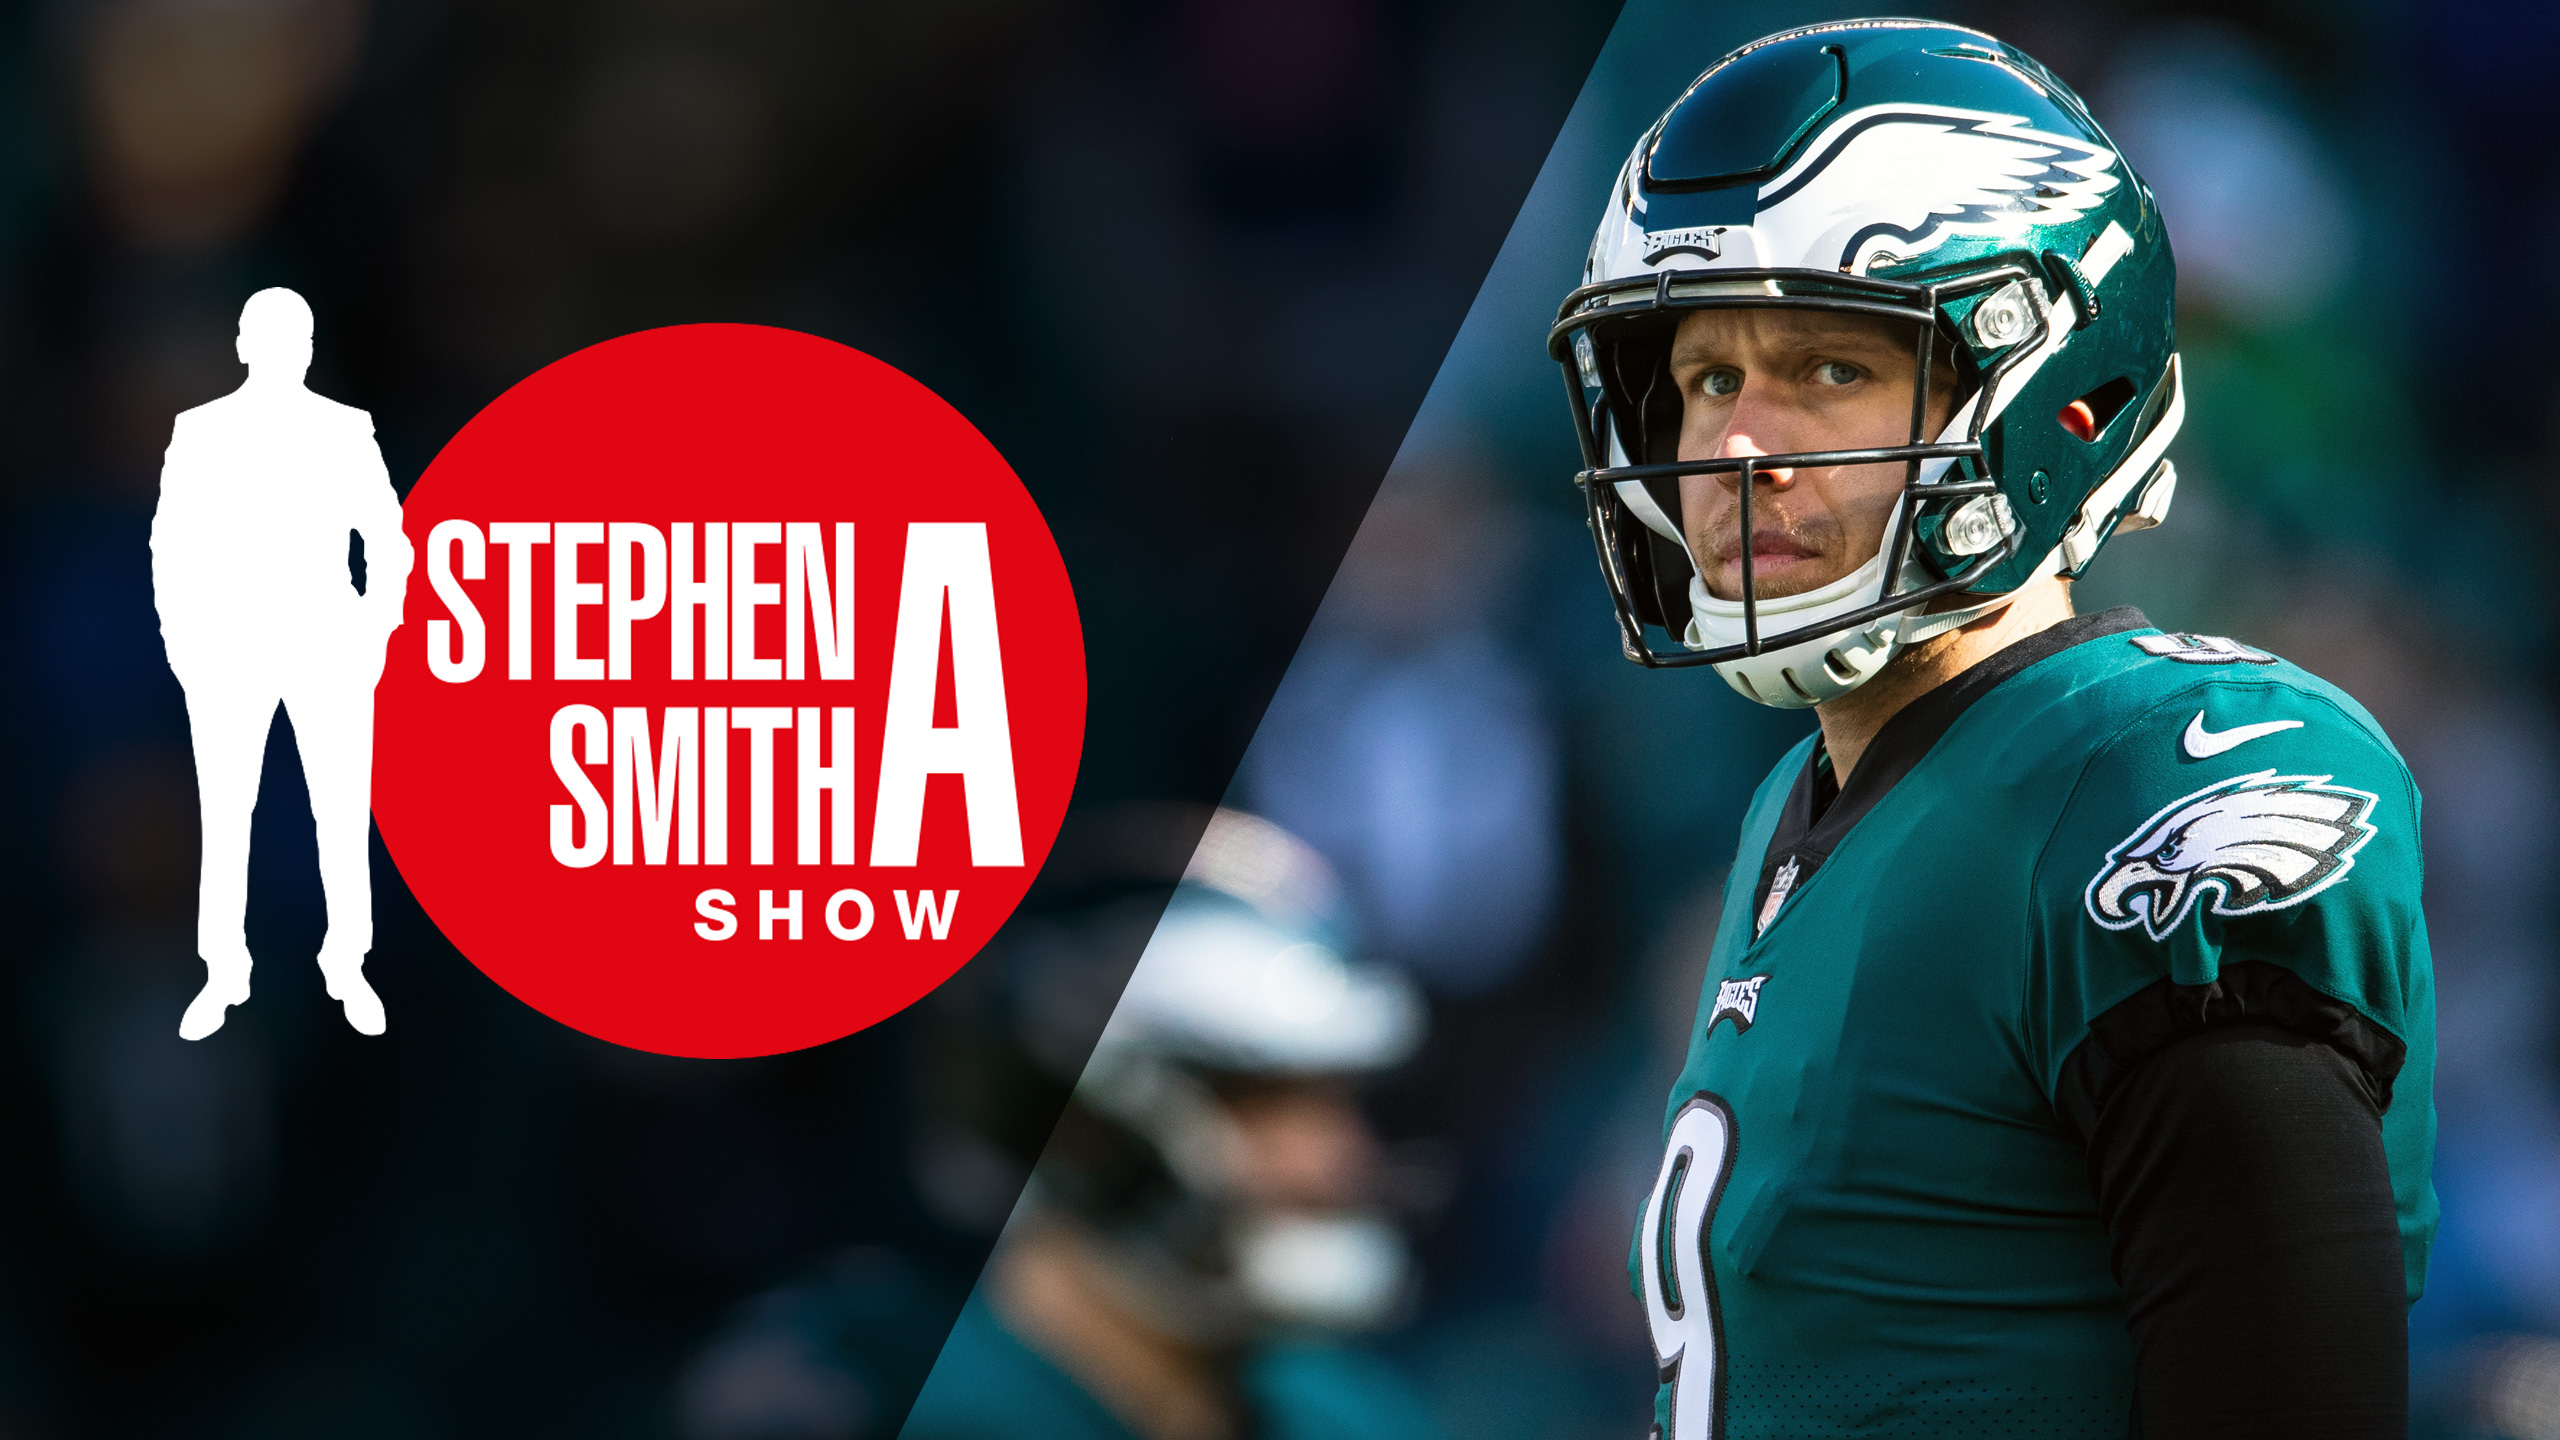 Wed, 1/16 - The Stephen A. Smith Show